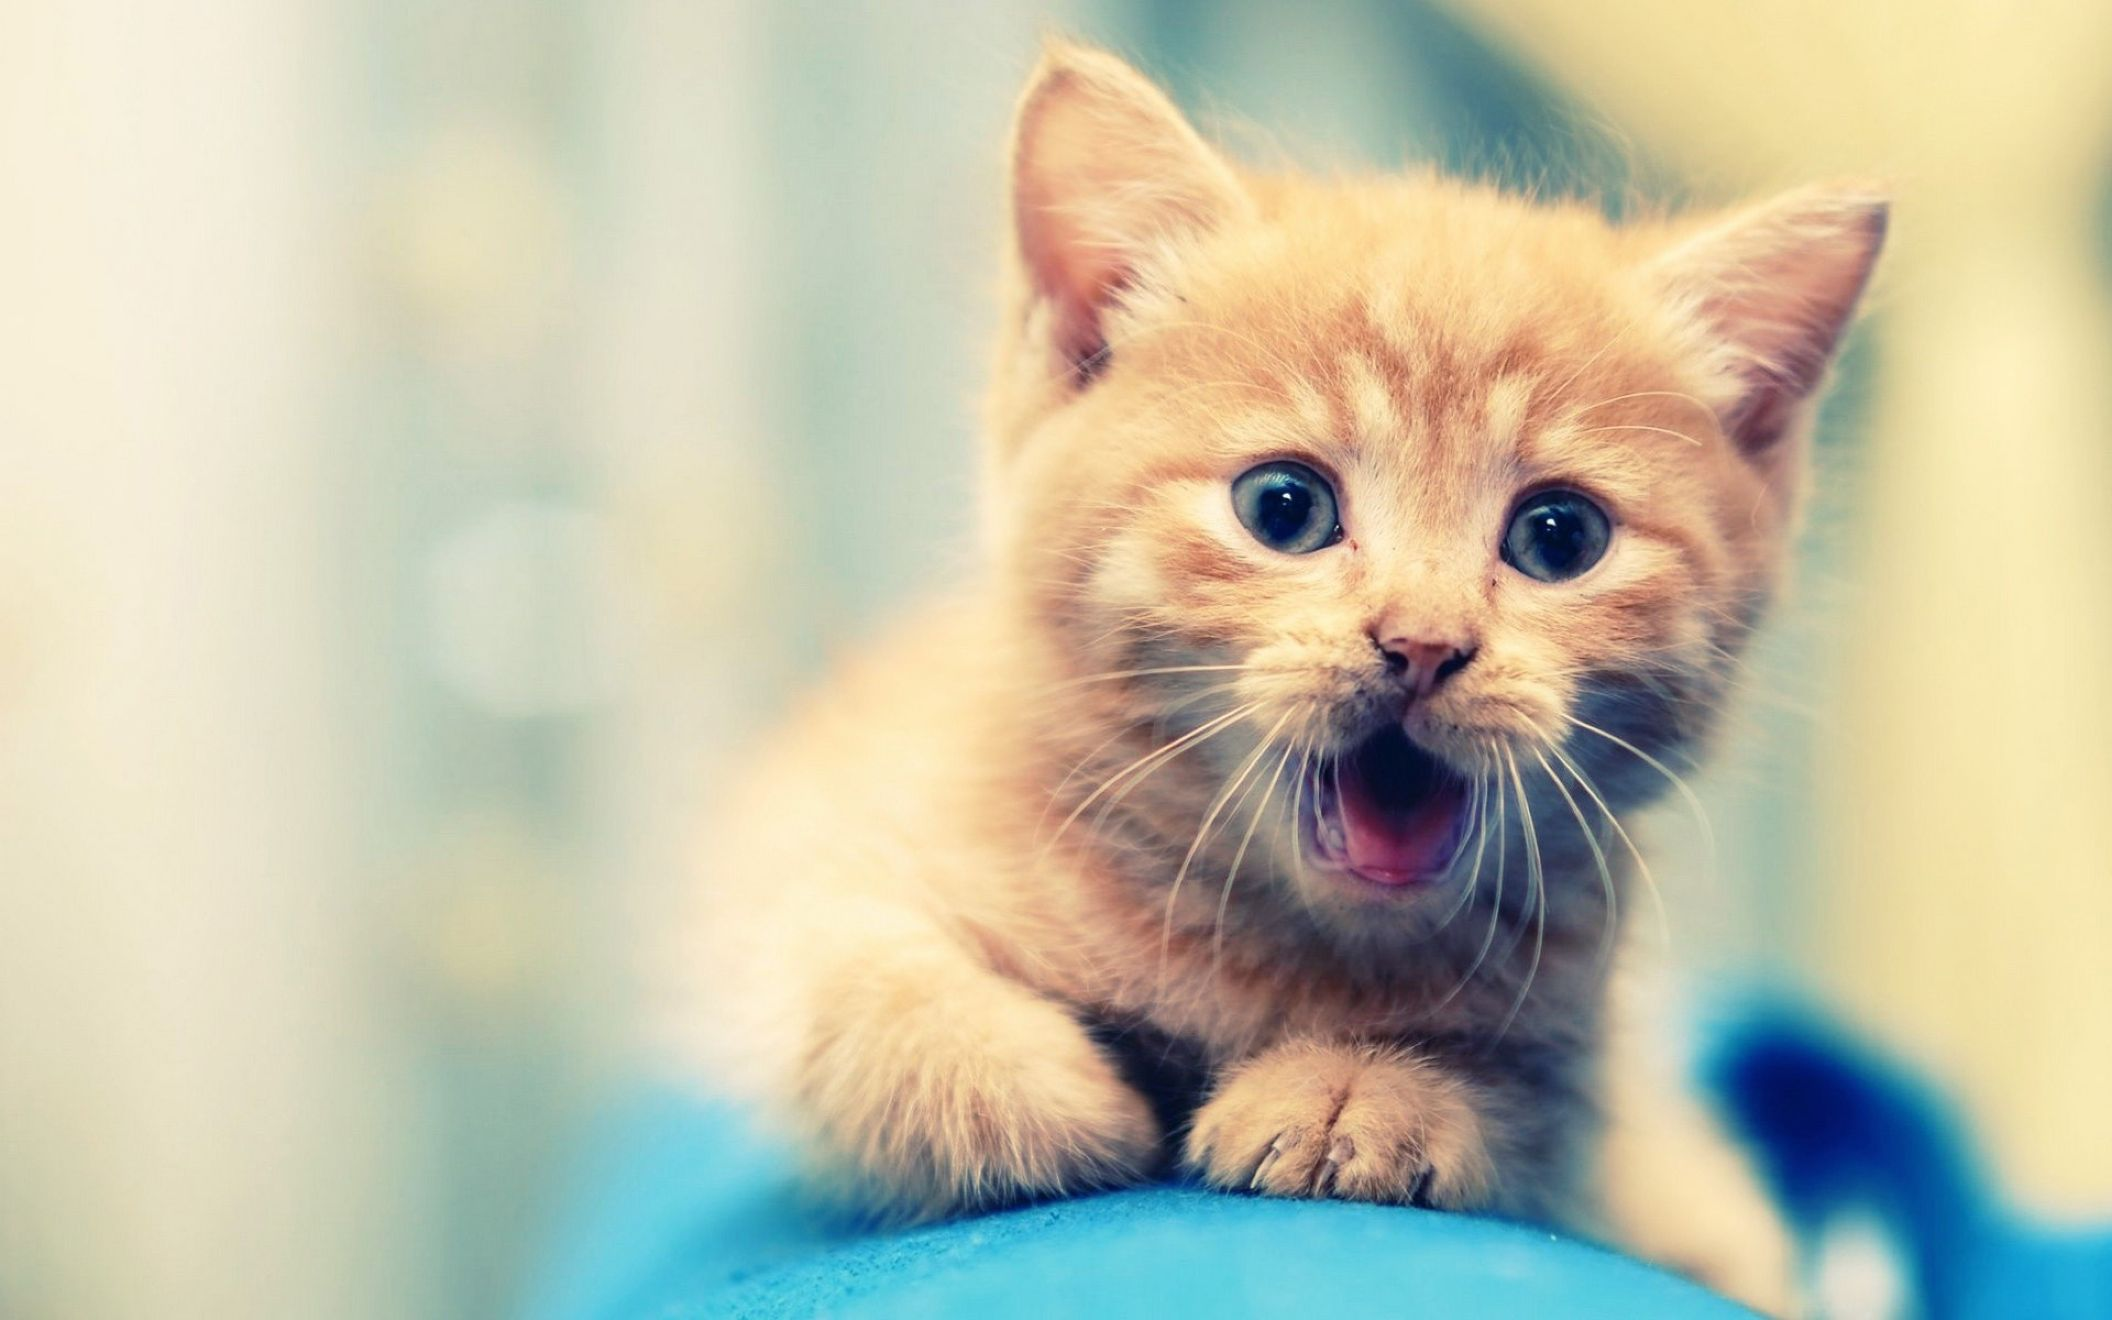 Download free HD Cute Cat Animal for Desktop Background Full Screen Wallpaper, image